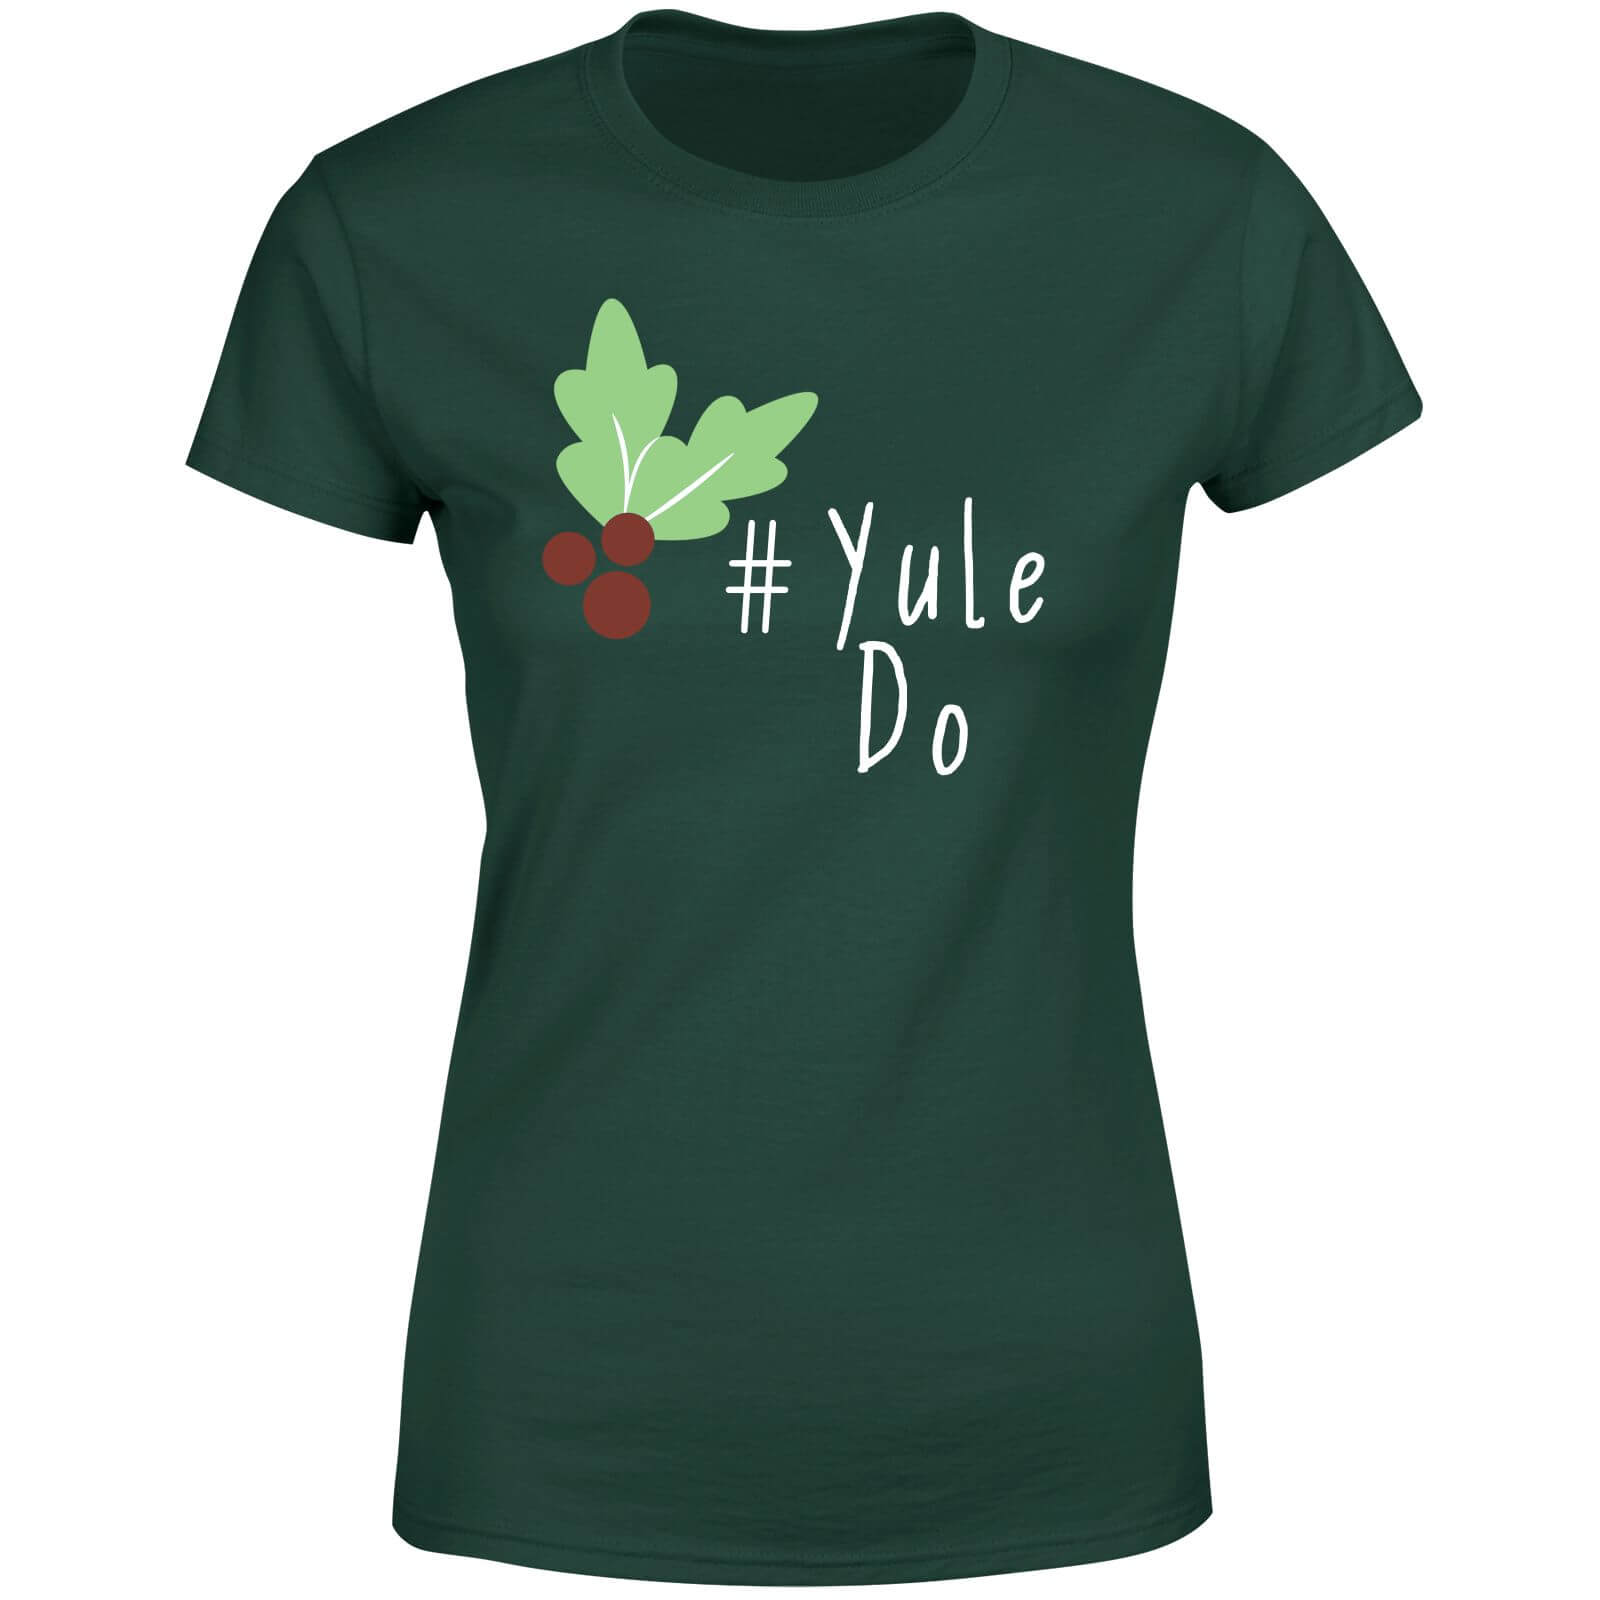 Yule Do Women